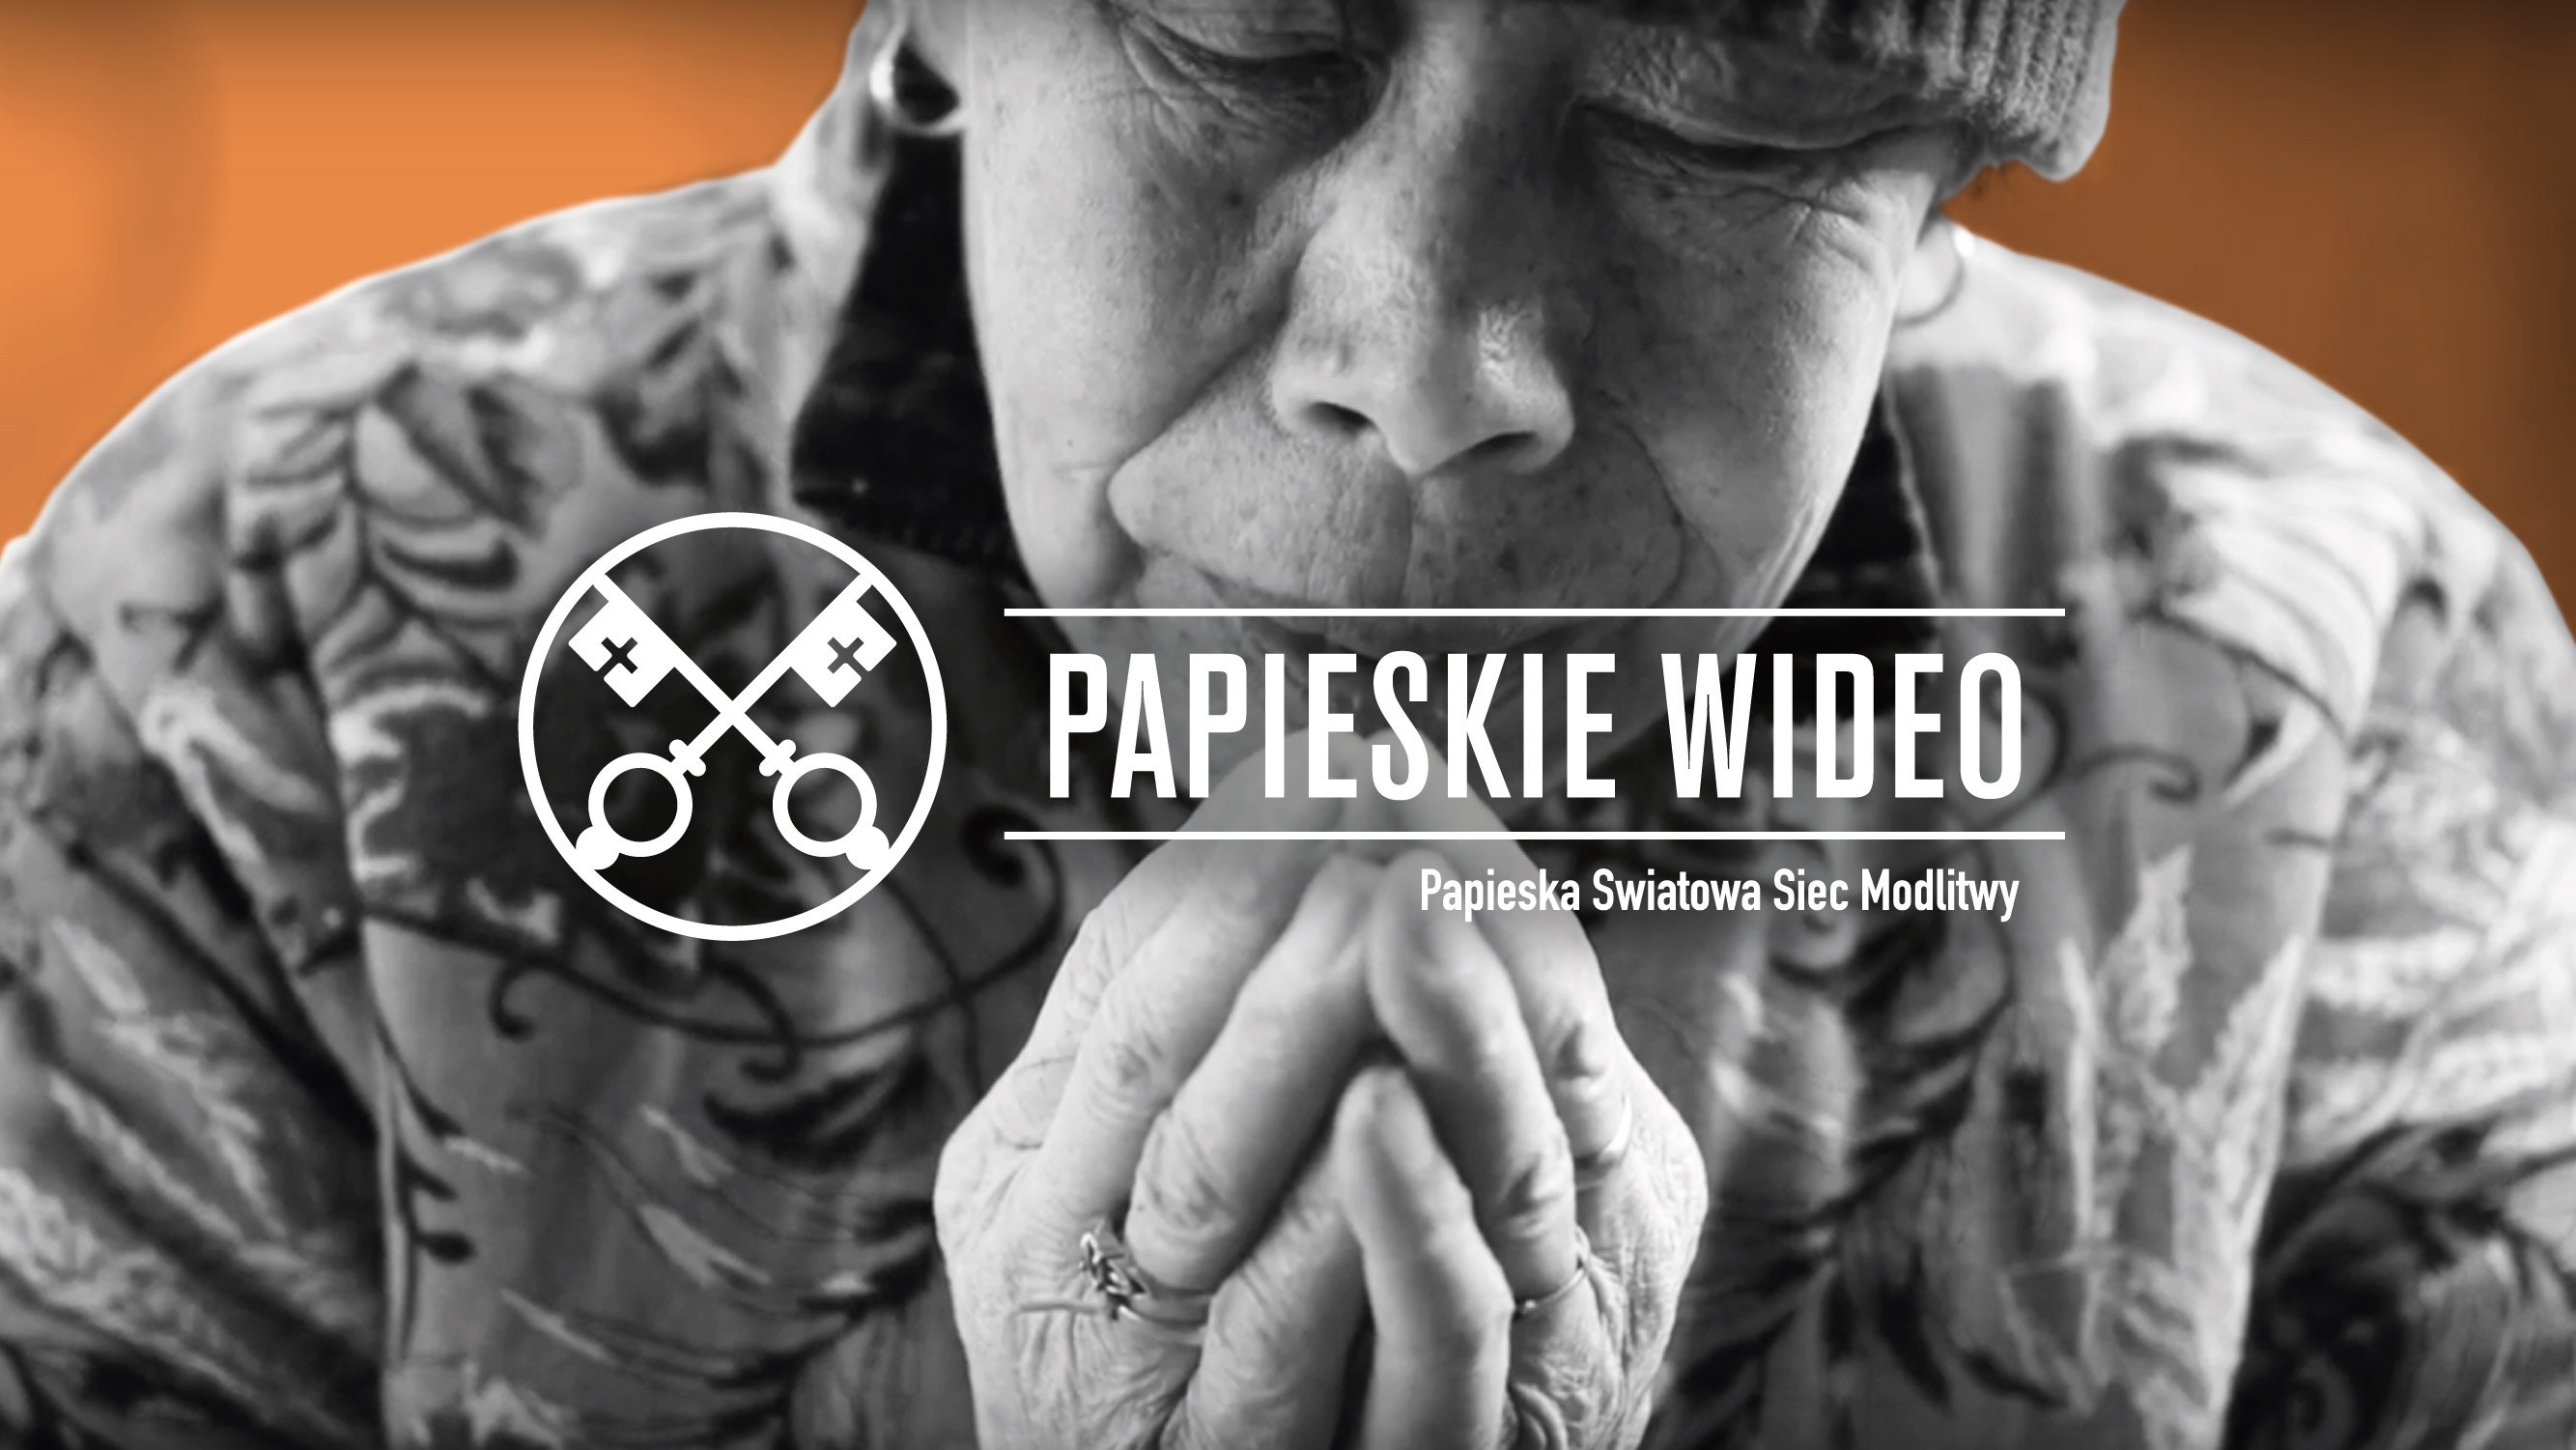 Official Image - TPV 3 2020 PL - Papieskie Wideo - Katolicy w Chinach